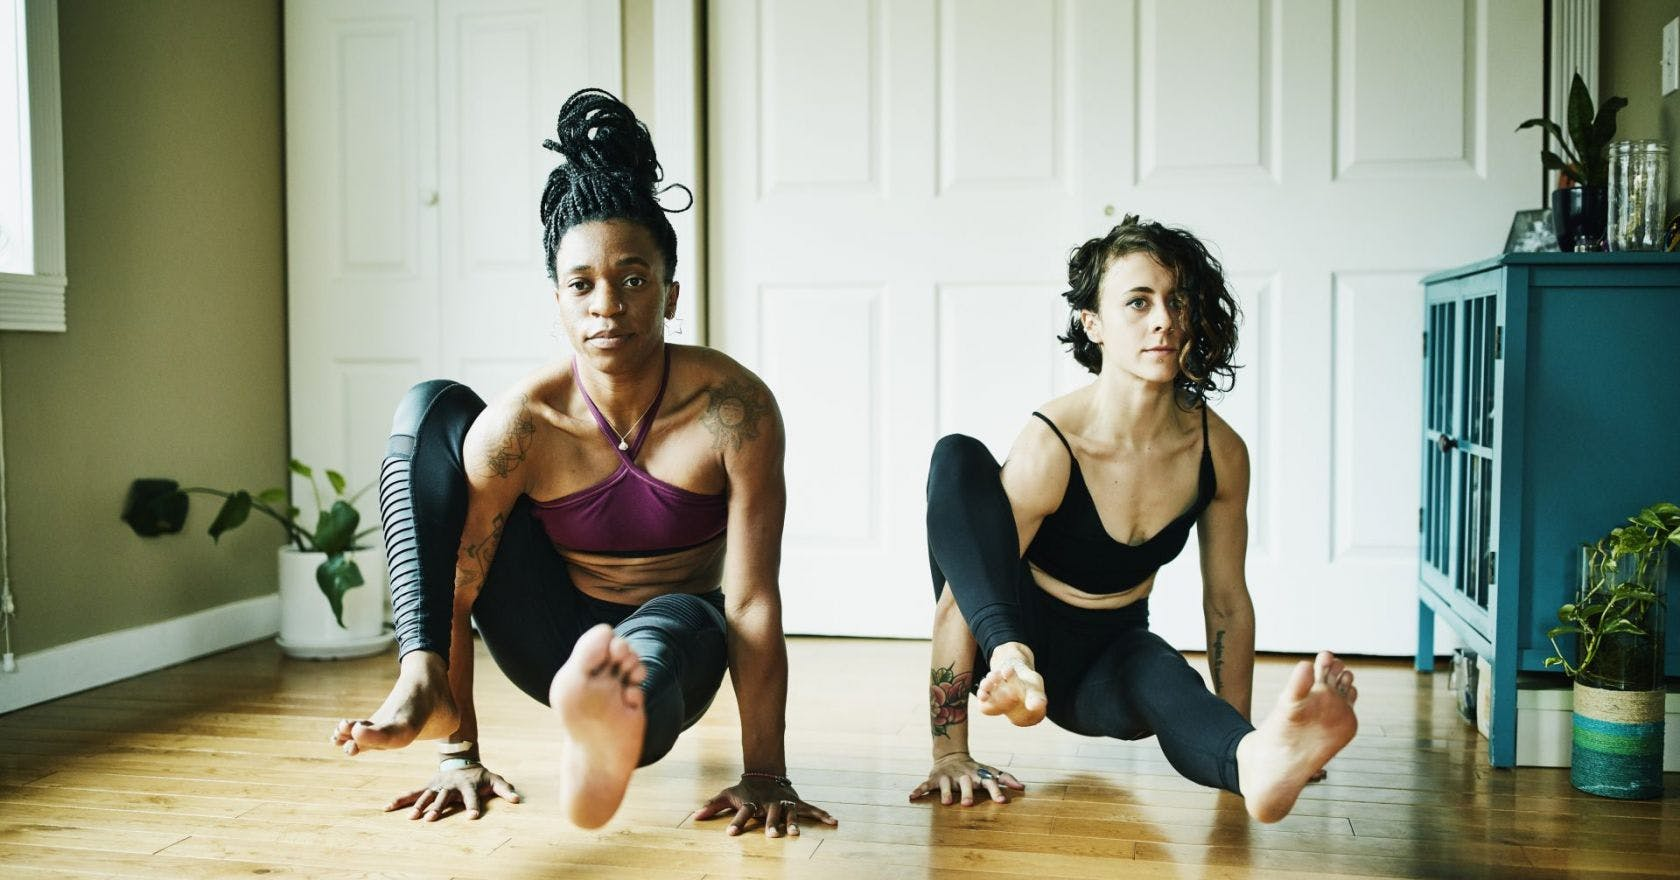 Yoga isn't just about stretching, it can make you stronger too